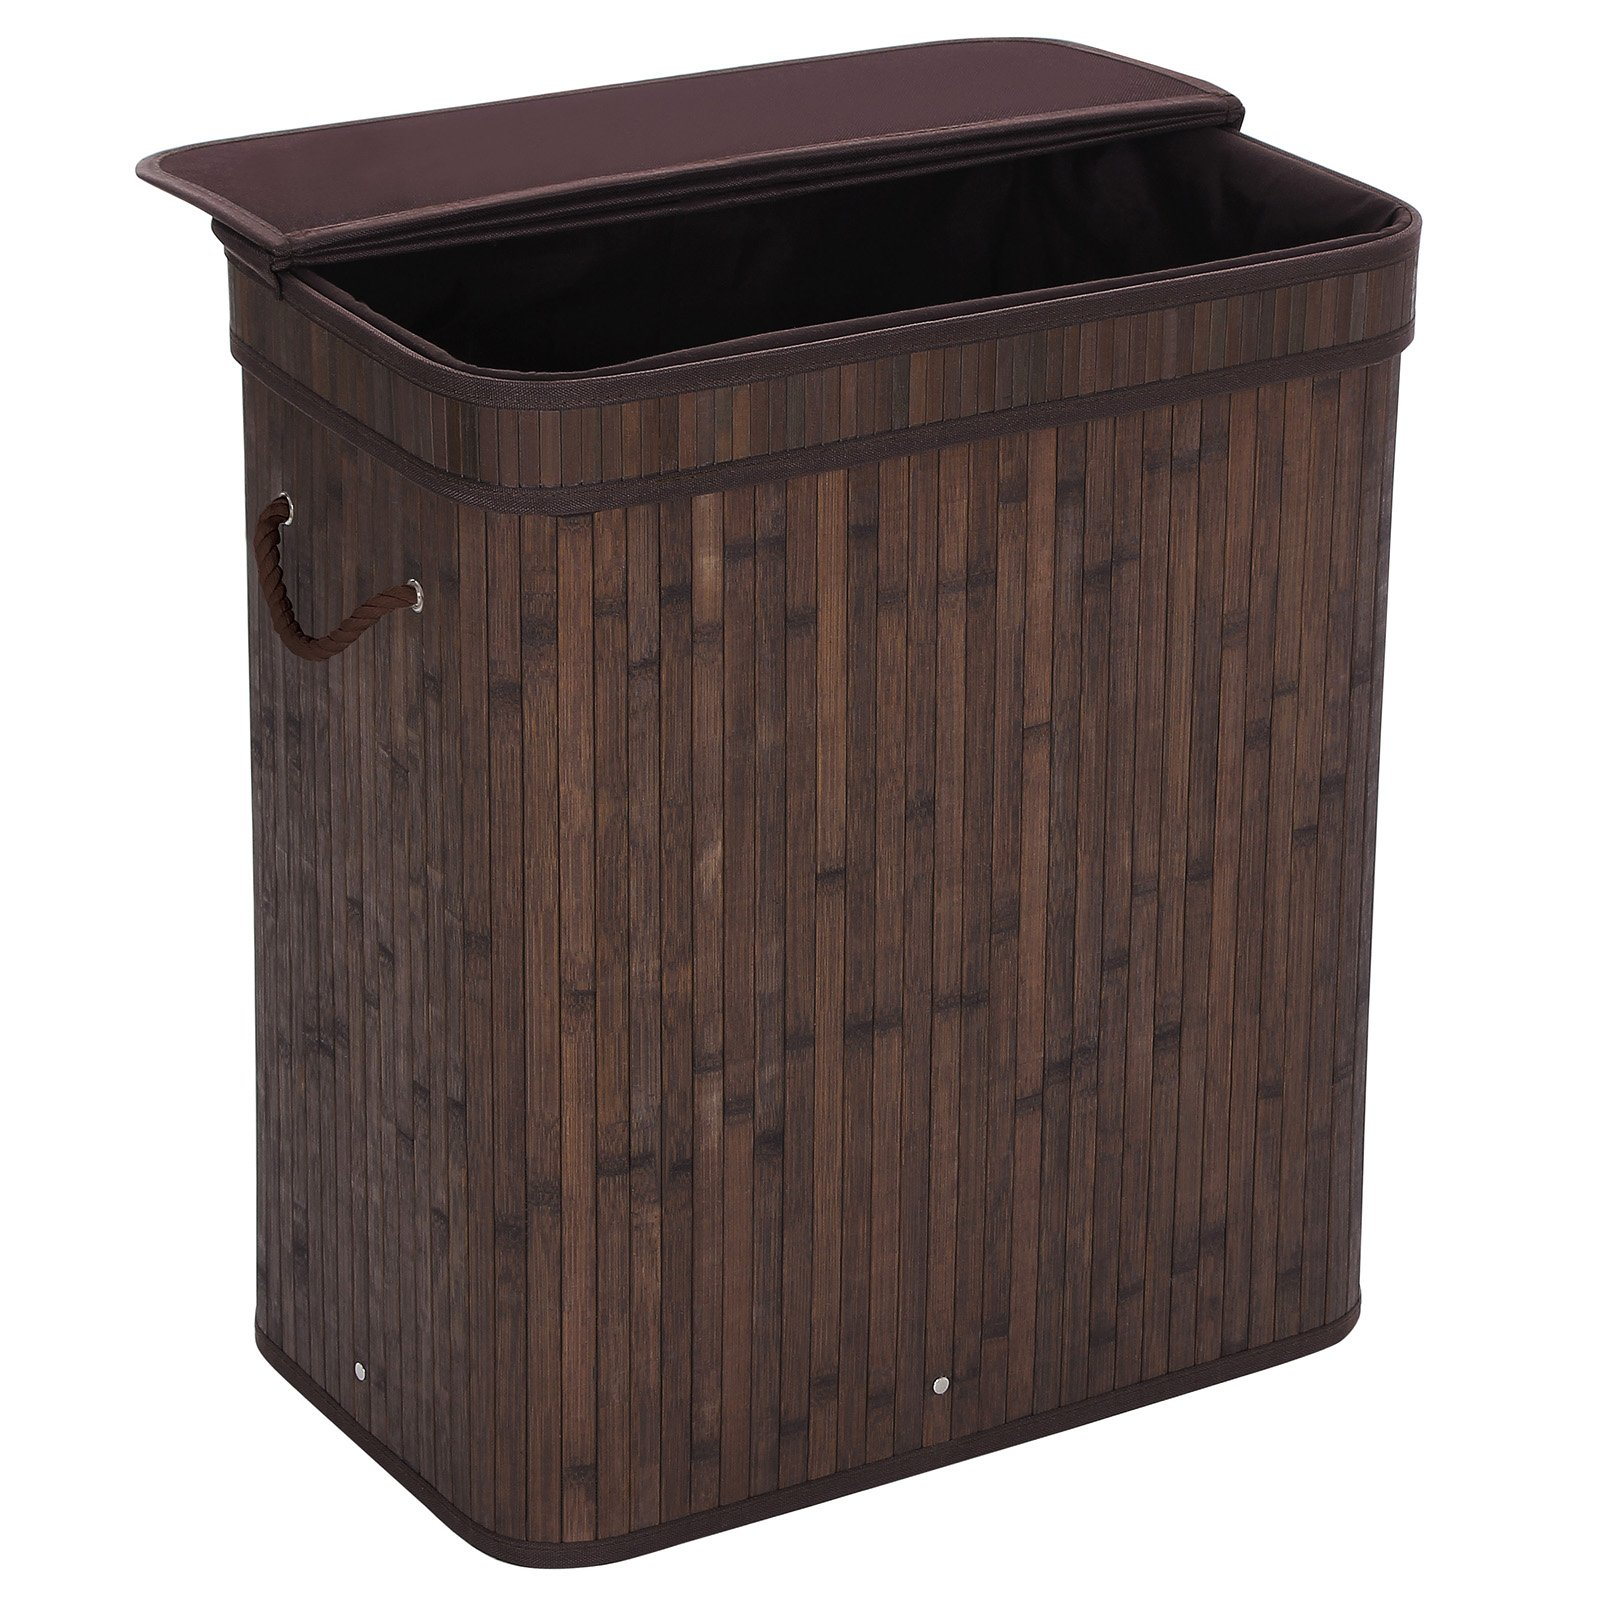 SONGMICS Folding Laundry Basket with Lid Handles and Removable Liner Bamboo Hampers Dirty Clothes Storage Rectangular Dark Brown ULCB63B by SONGMICS (Image #1)